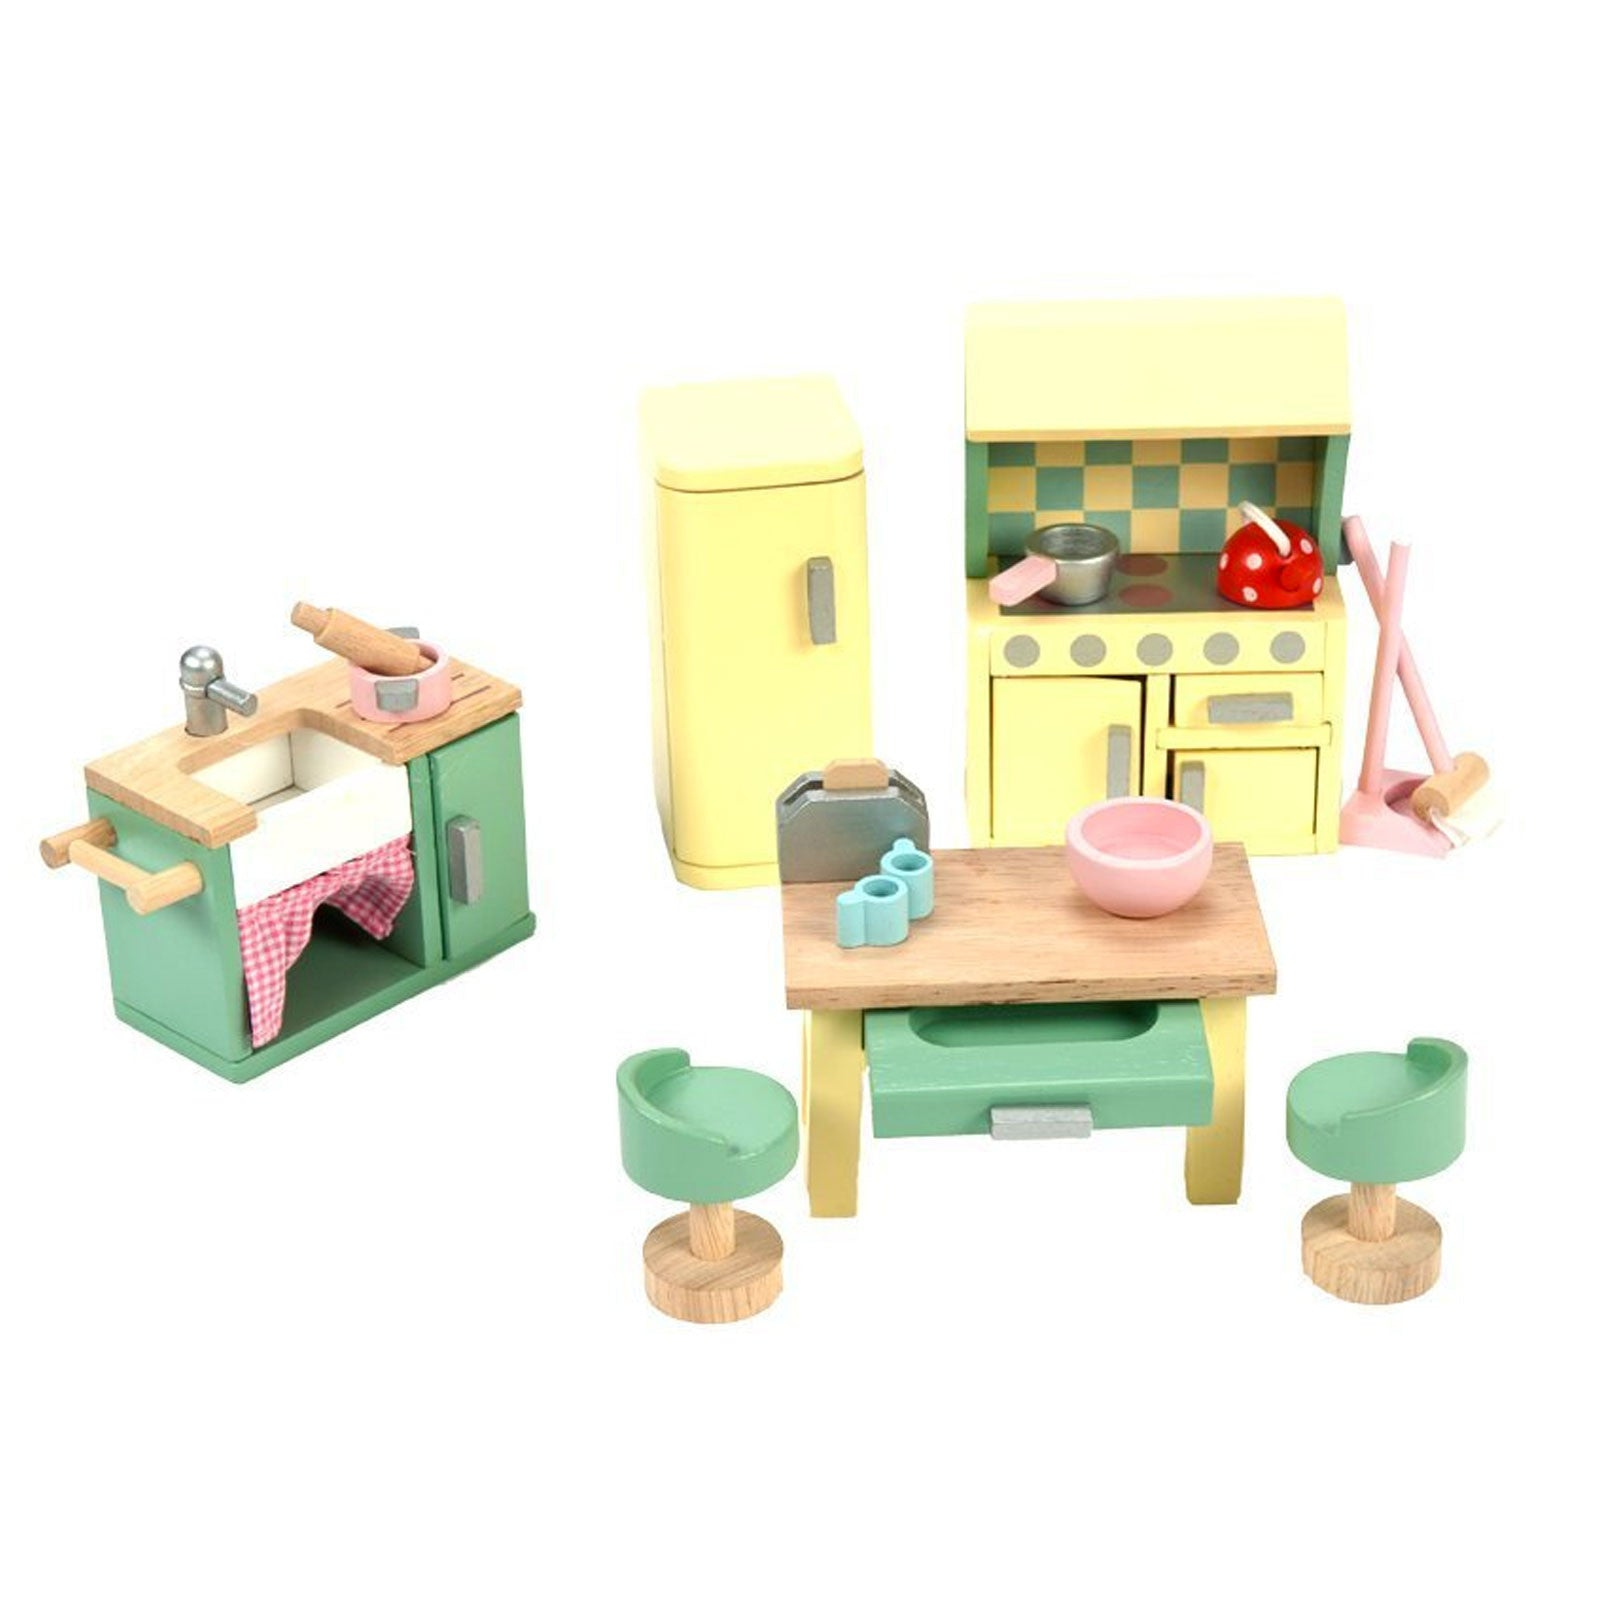 Le Toy Van Dolls House Furniture Le Toy Van Dollhouse Accessories Kitchen at Little Earth Nest Eco Shop